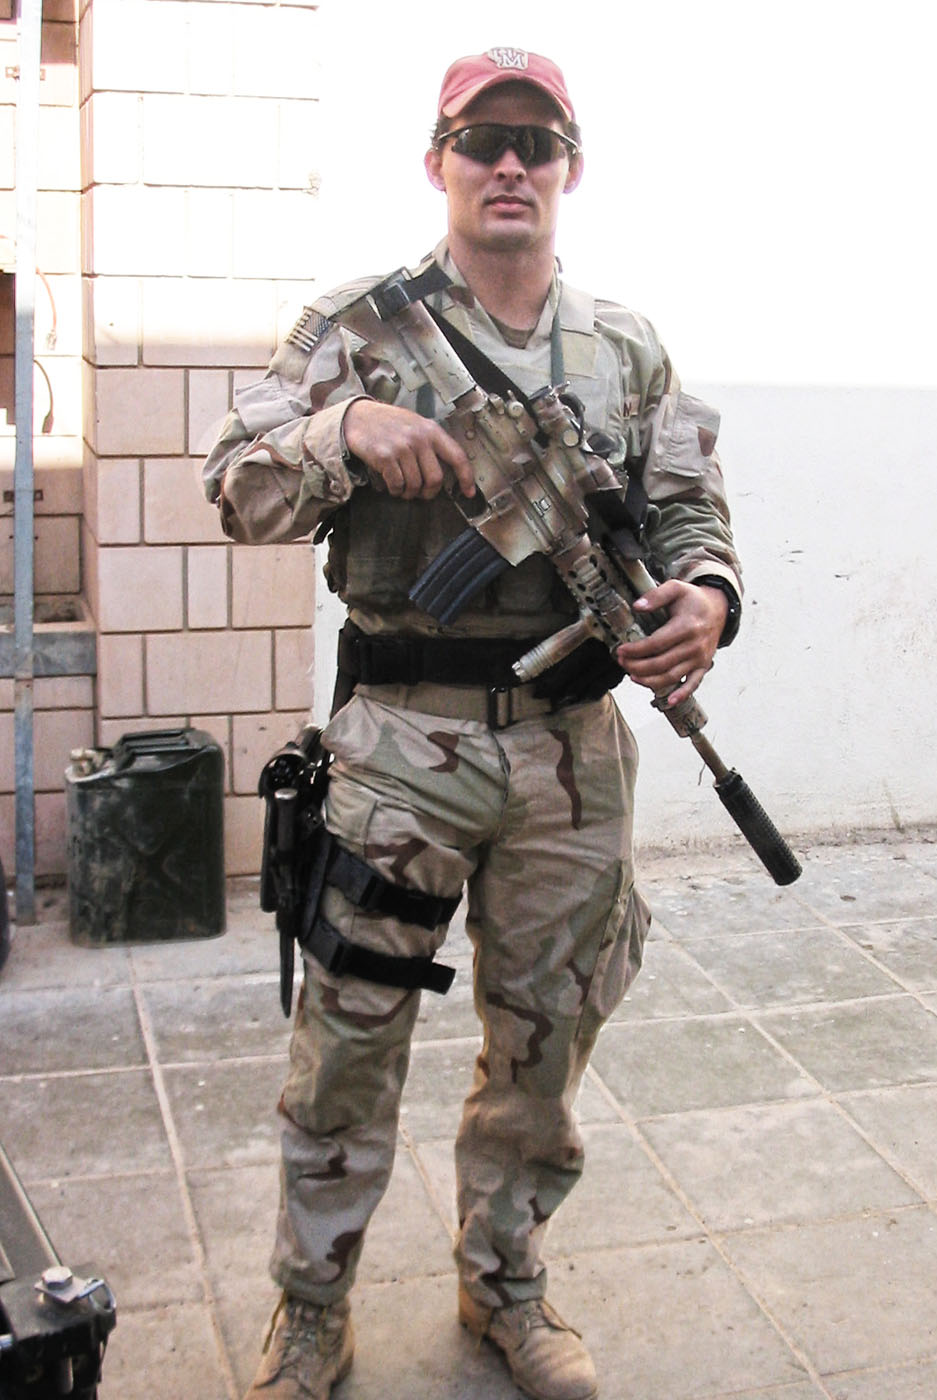 U.S. Army Staff Sergeant Aaron N. Holleyman, 27, of Glasgow, Montana, assigned to the 1st Battalion, 5th Special Forces Group, based in Fort Campbell, Kentucky, was killed on August 30, 2004, when his military vehicle hit an improvised explosive device in Khutayiah, Iraq. He is survived by his daughters Shelby and Erin, son Zachary, parents Ross and Glenda, and siblings Kelly and Daniel